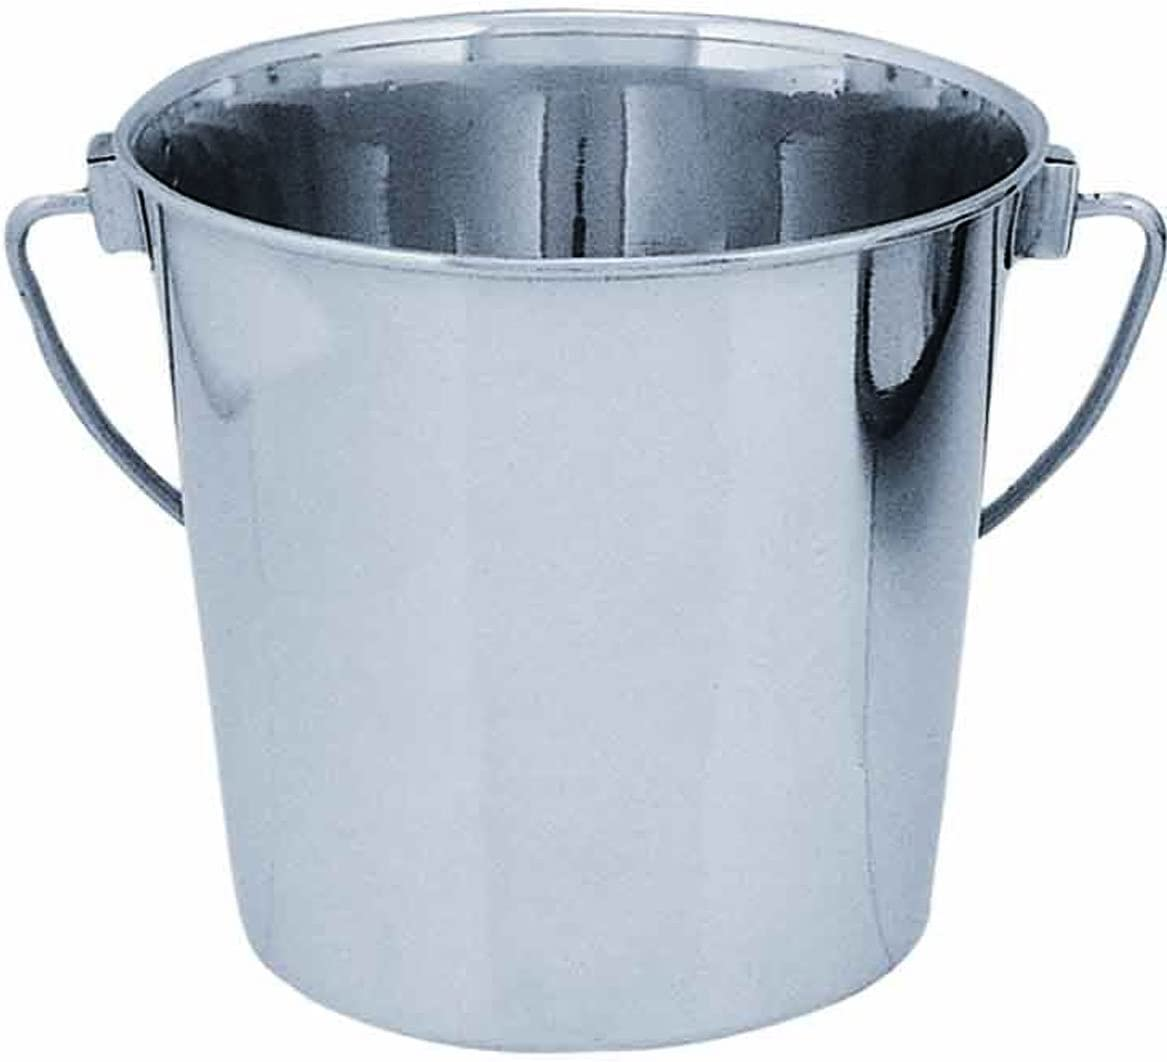 QT Dog Round Stainless Steel Bucket, 1 Quart